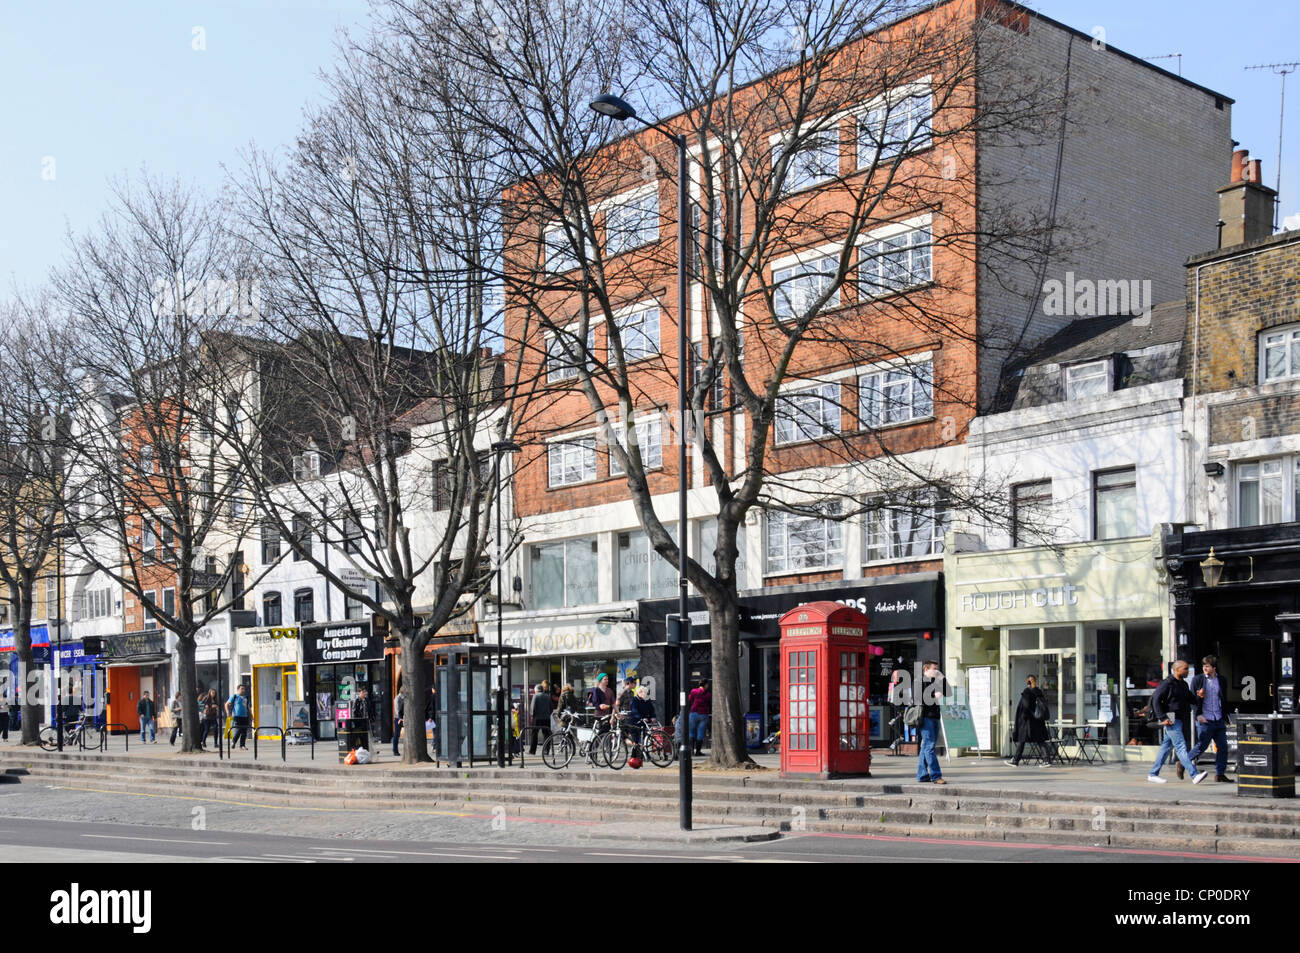 Upper Street shops and business premises - Stock Image